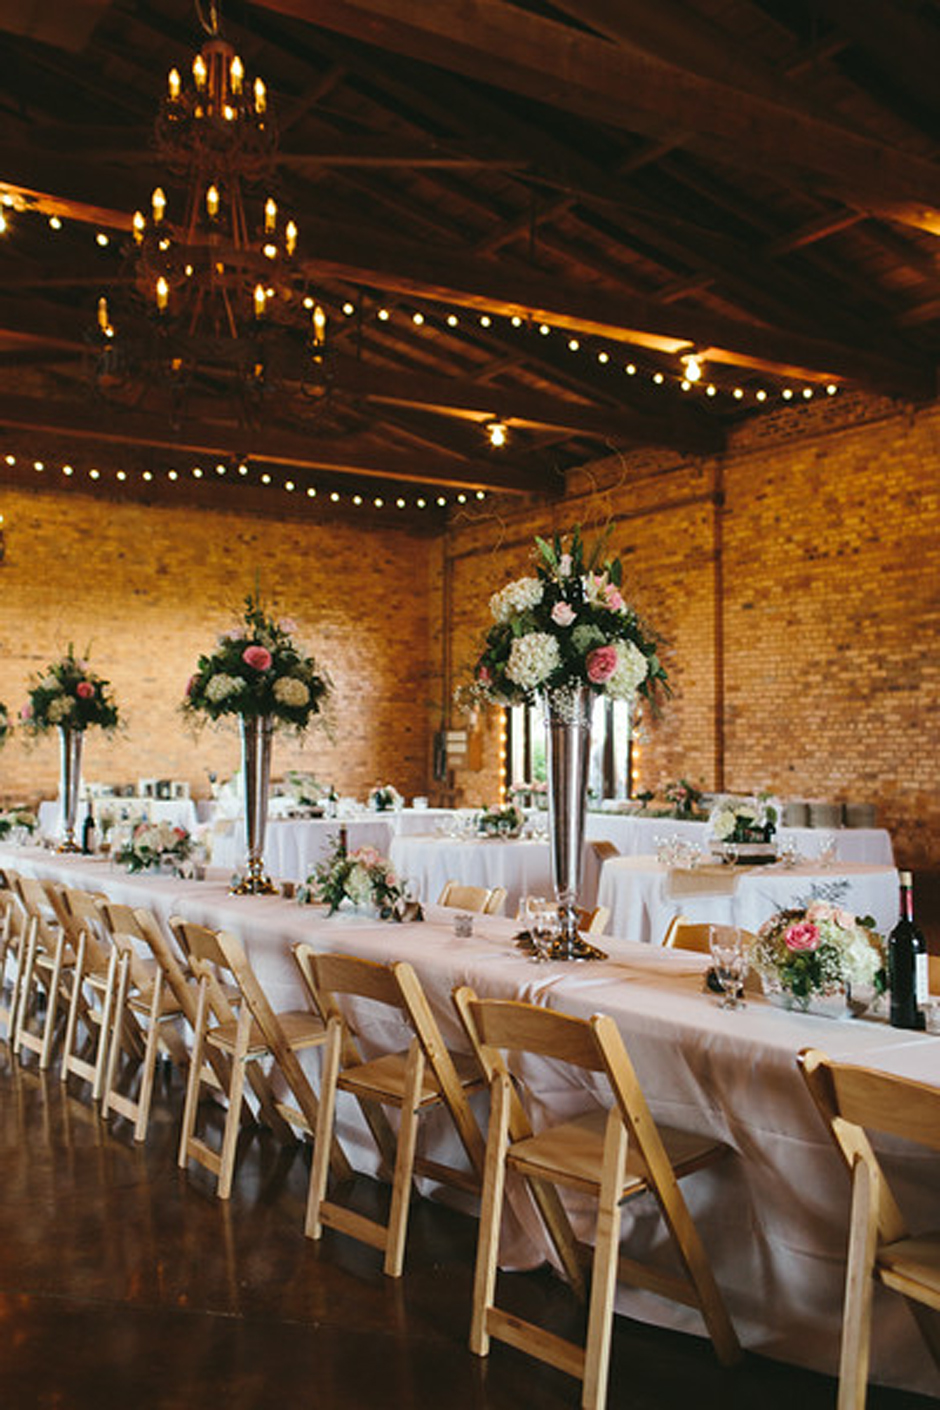 Wedding Reception Tables With Tall Upright Centerpieces And Wooden Folding Chairs